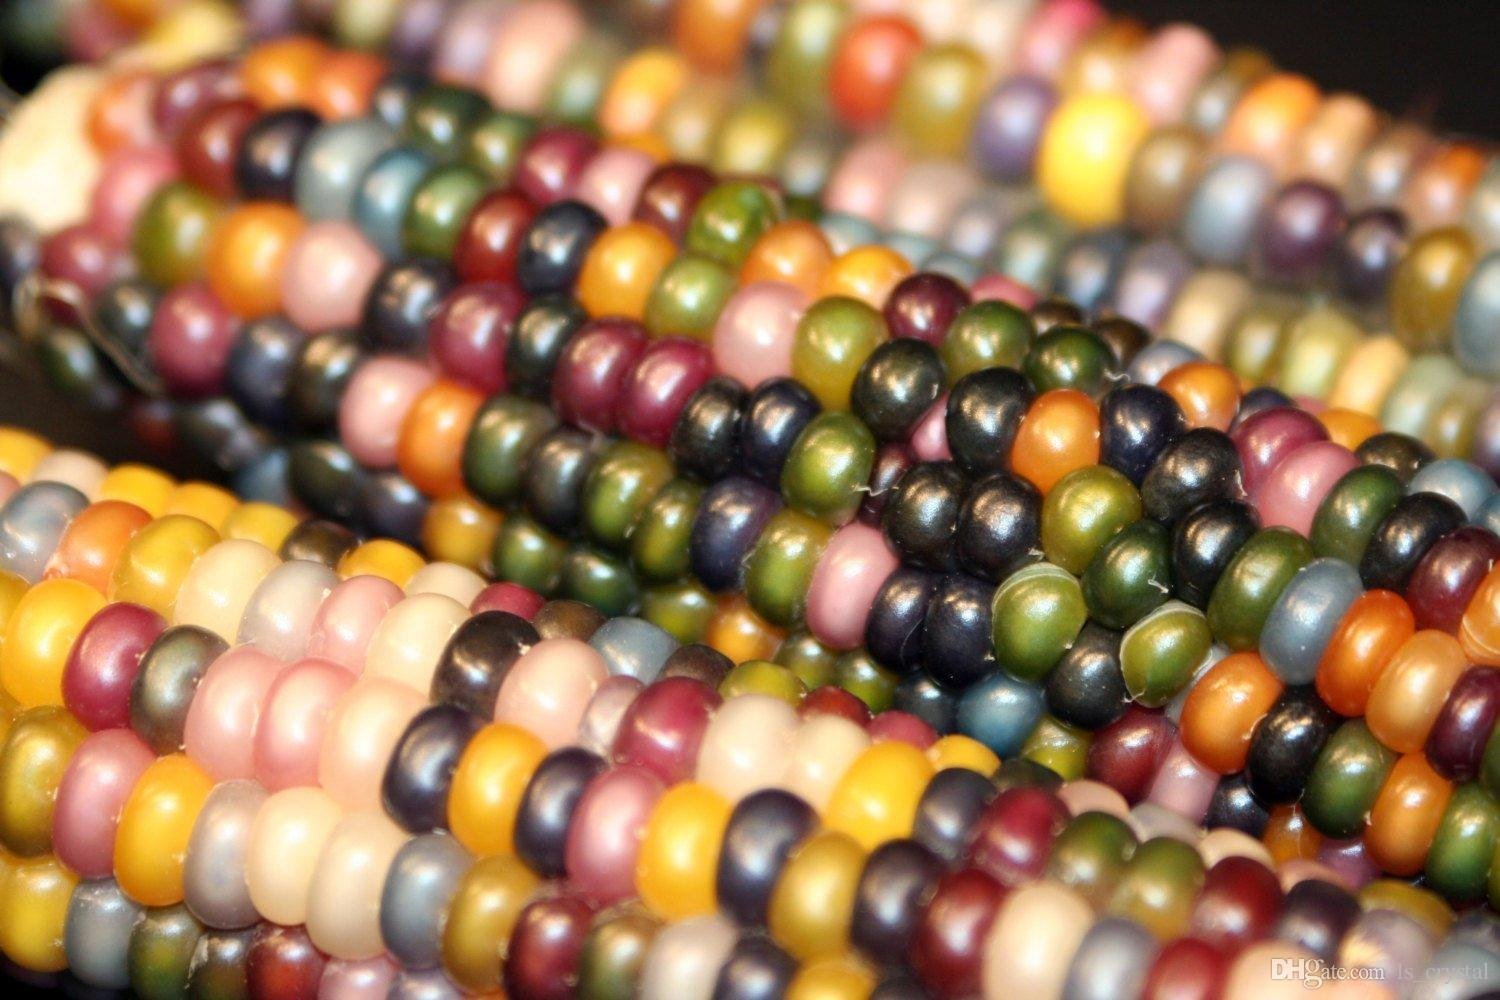 2020 Rainbow Corn Glass Gem Indian Corn Heirloom Seed The Most